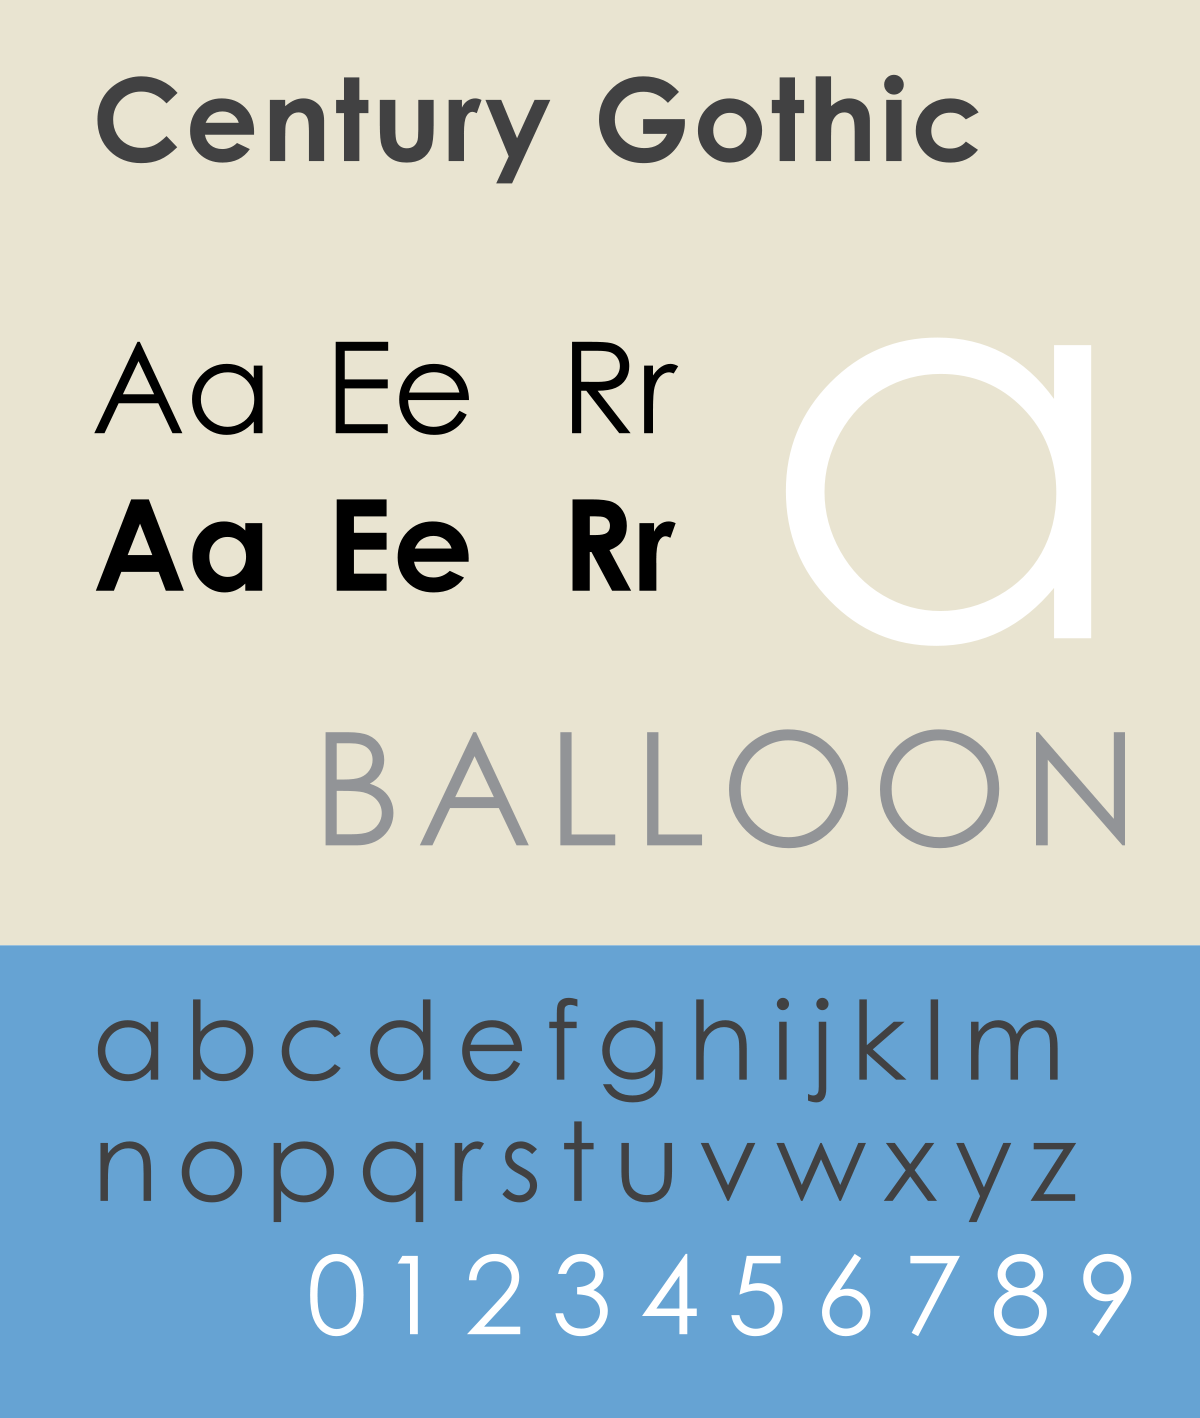 Century Gothic - The Best & Worst Fonts for Your Resume